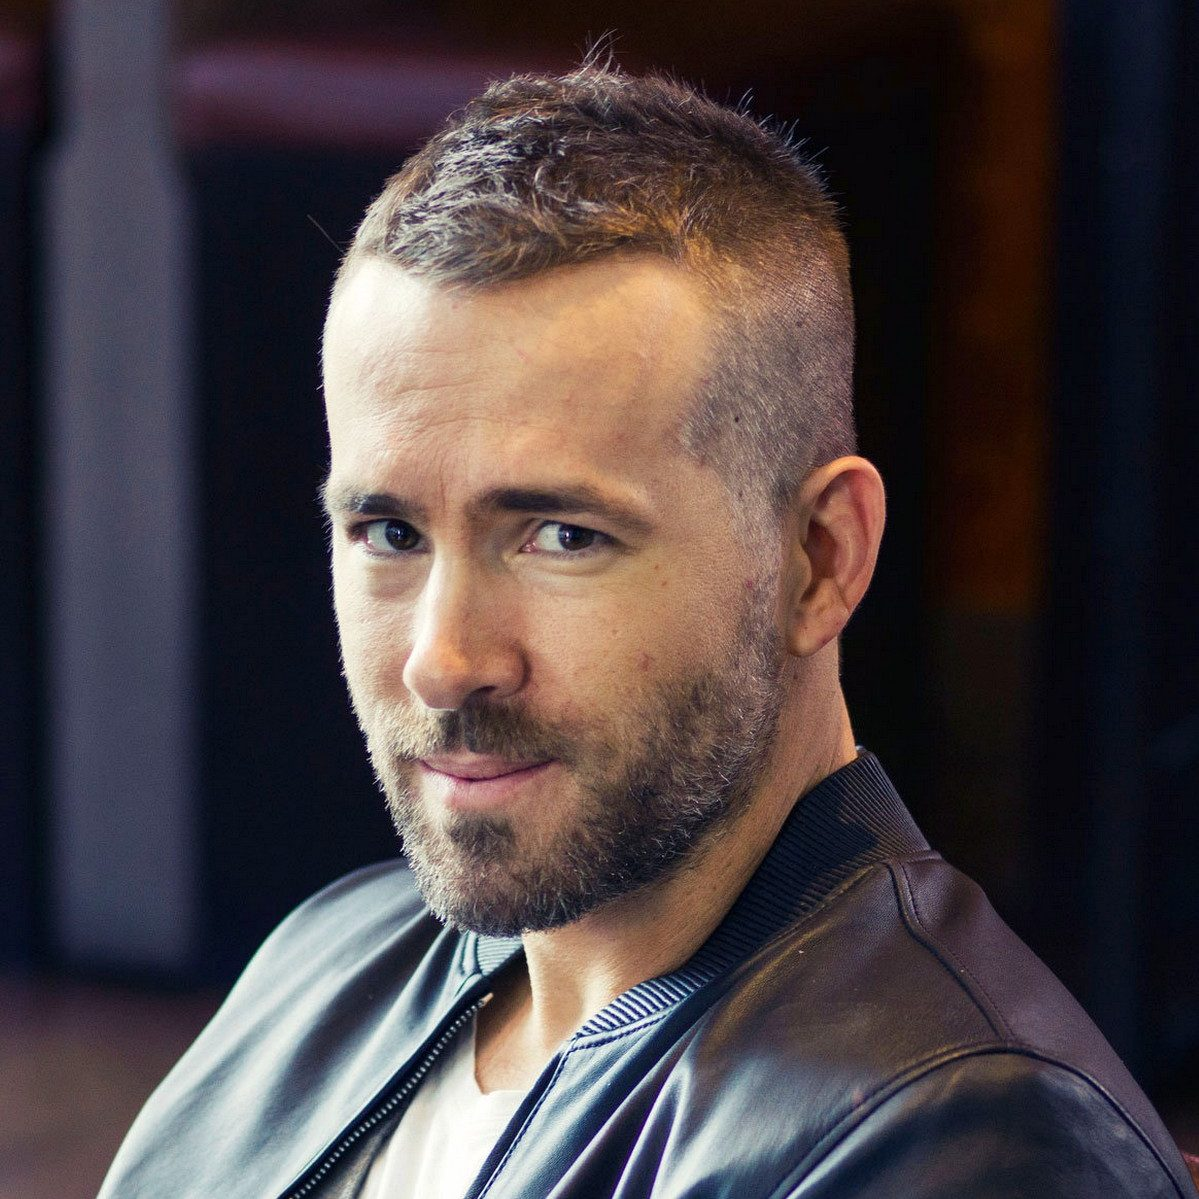 The High And Tight Haircut 11 Modern Styles Of A Classic Look